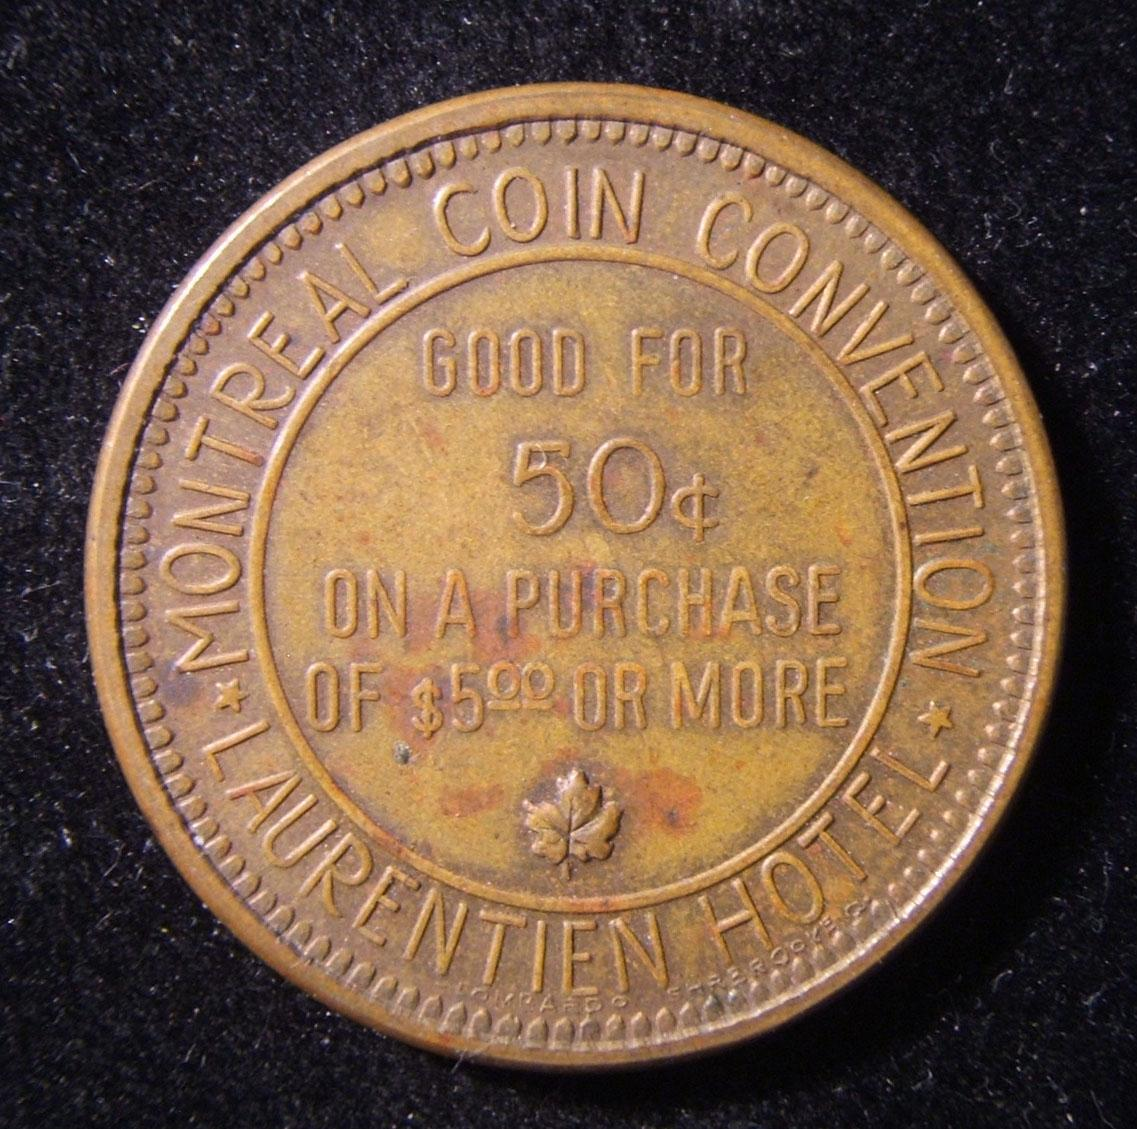 Canada > Montreal: bronze bilingual English/French 50 Cent token of the Montreal Coin Convention at the Laurentien Hotel, circa. 1948-early 1950s. The Jewish-connection to the even